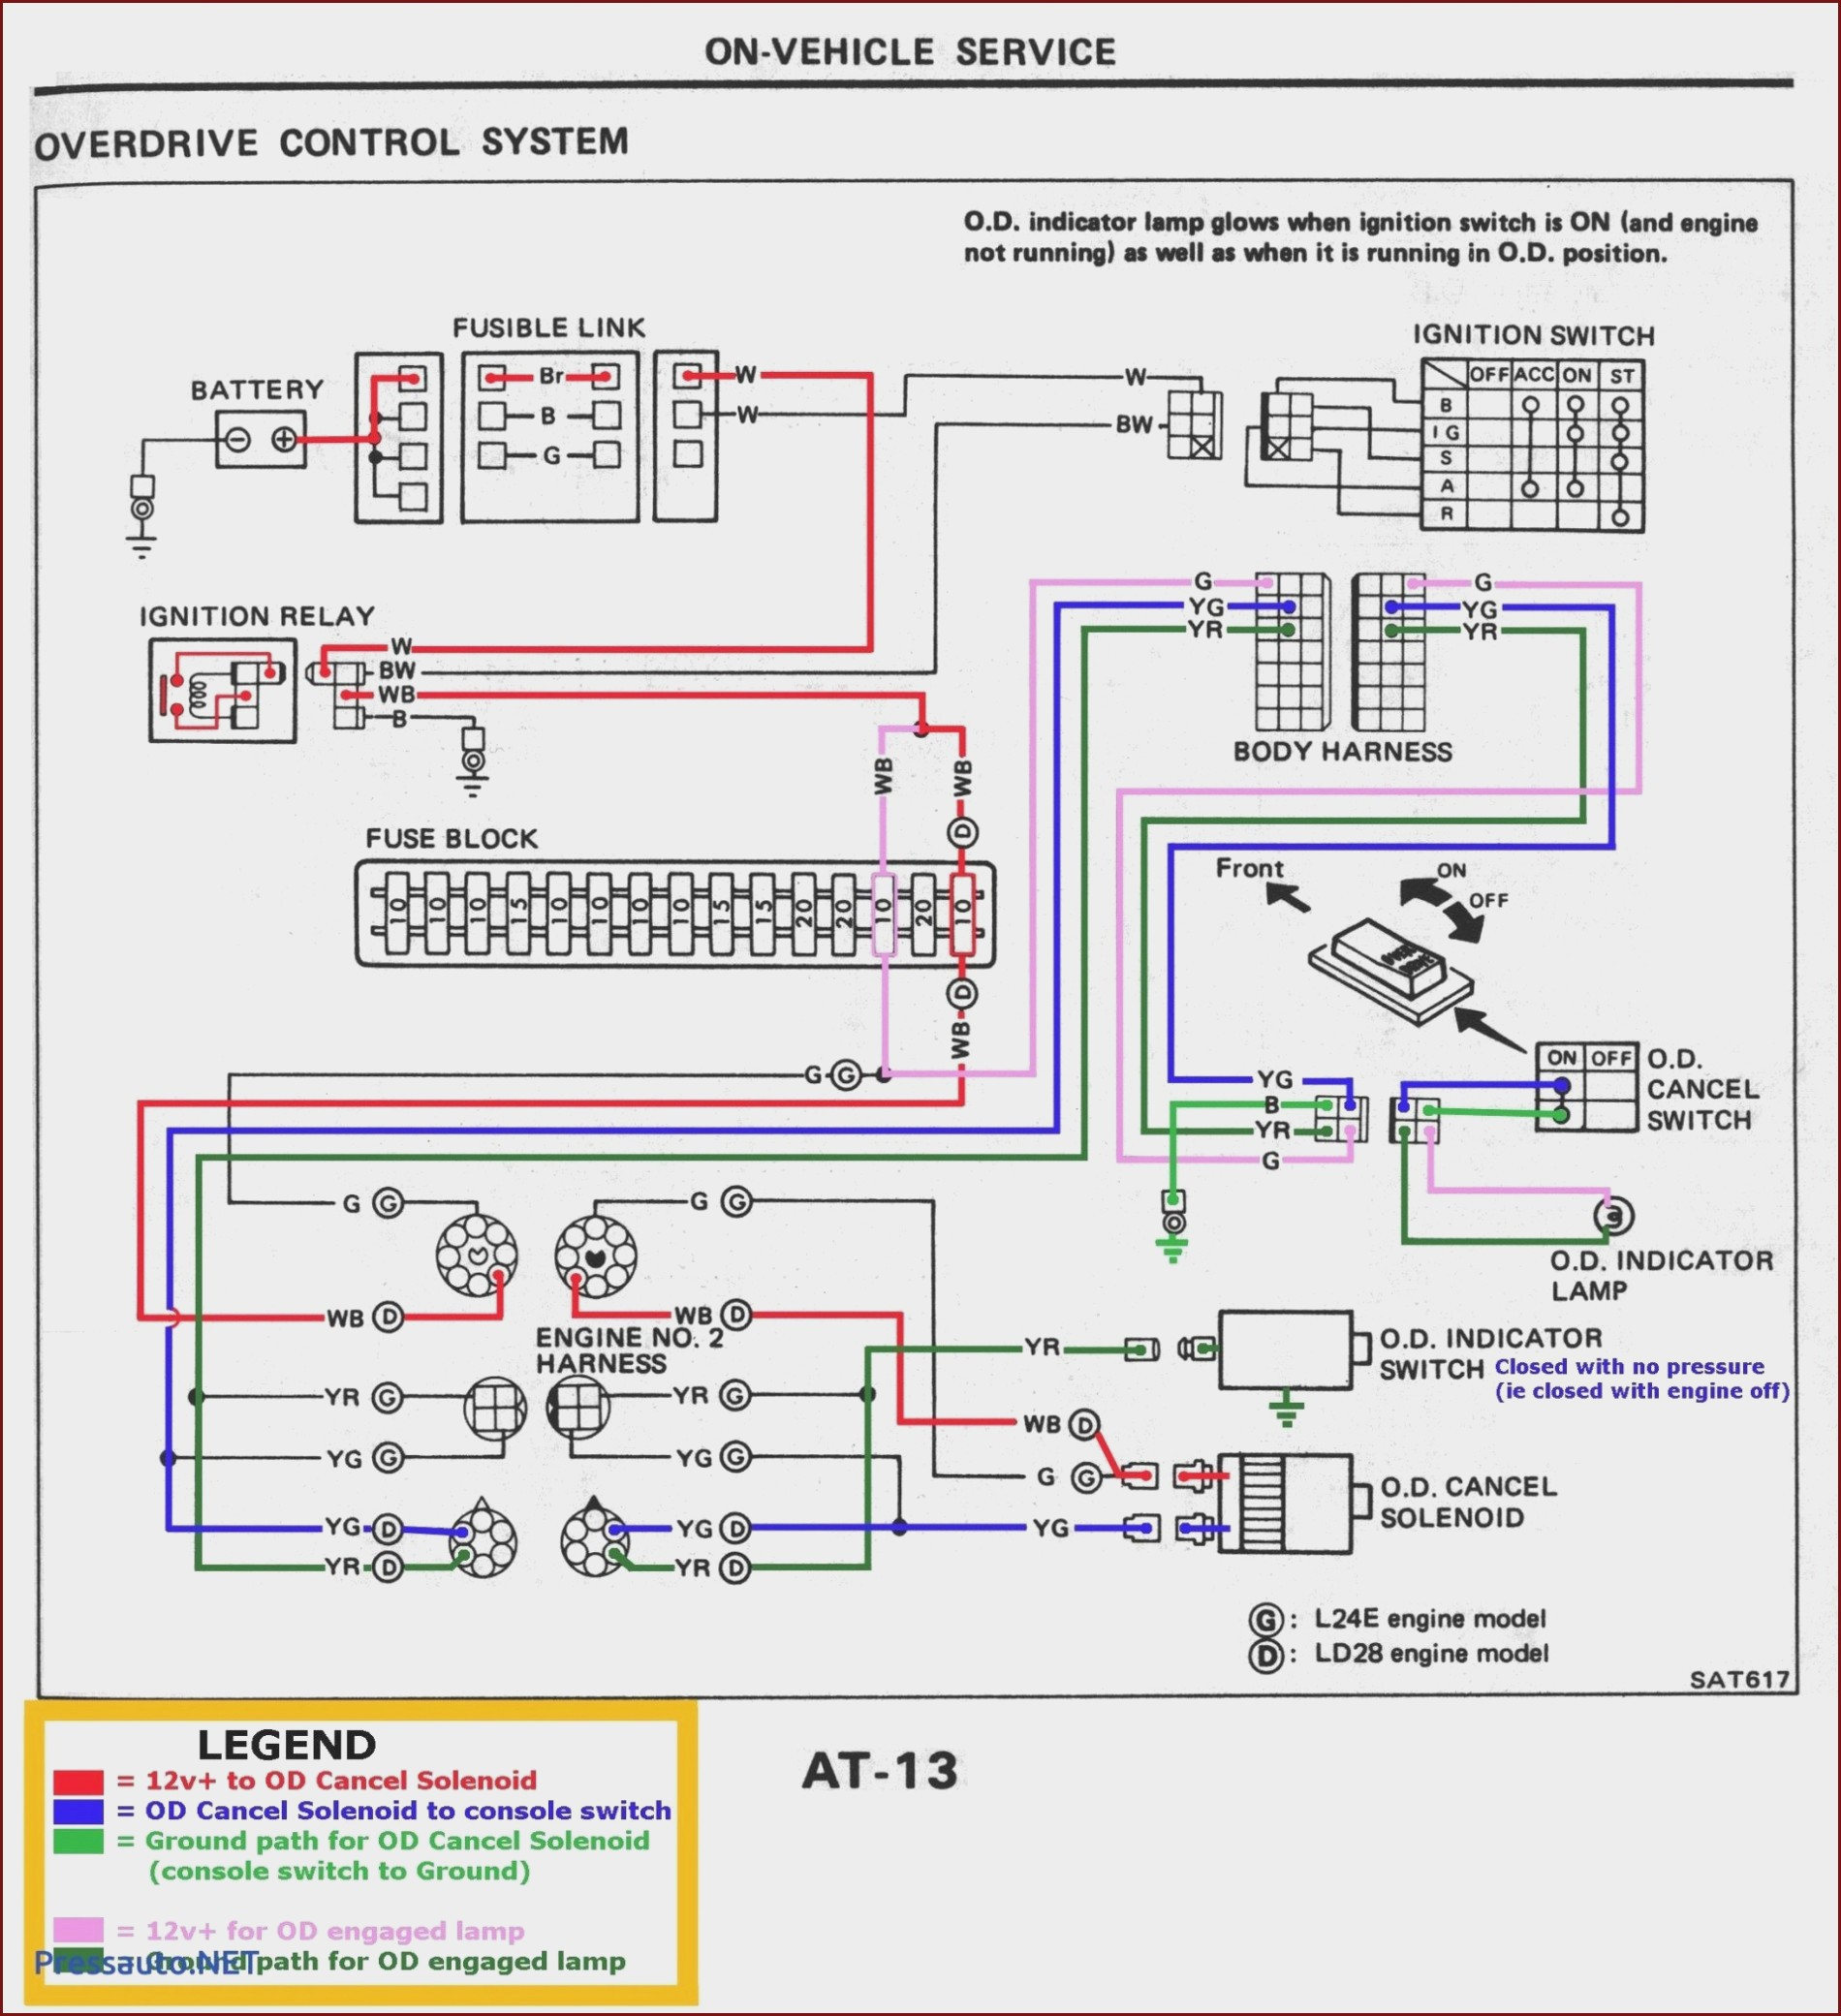 Genie Garage Door Sensor Wiring Diagram Omc E250 Fpxsif Wiring Diagram Wiring Diagram Options Of Genie Garage Door Sensor Wiring Diagram